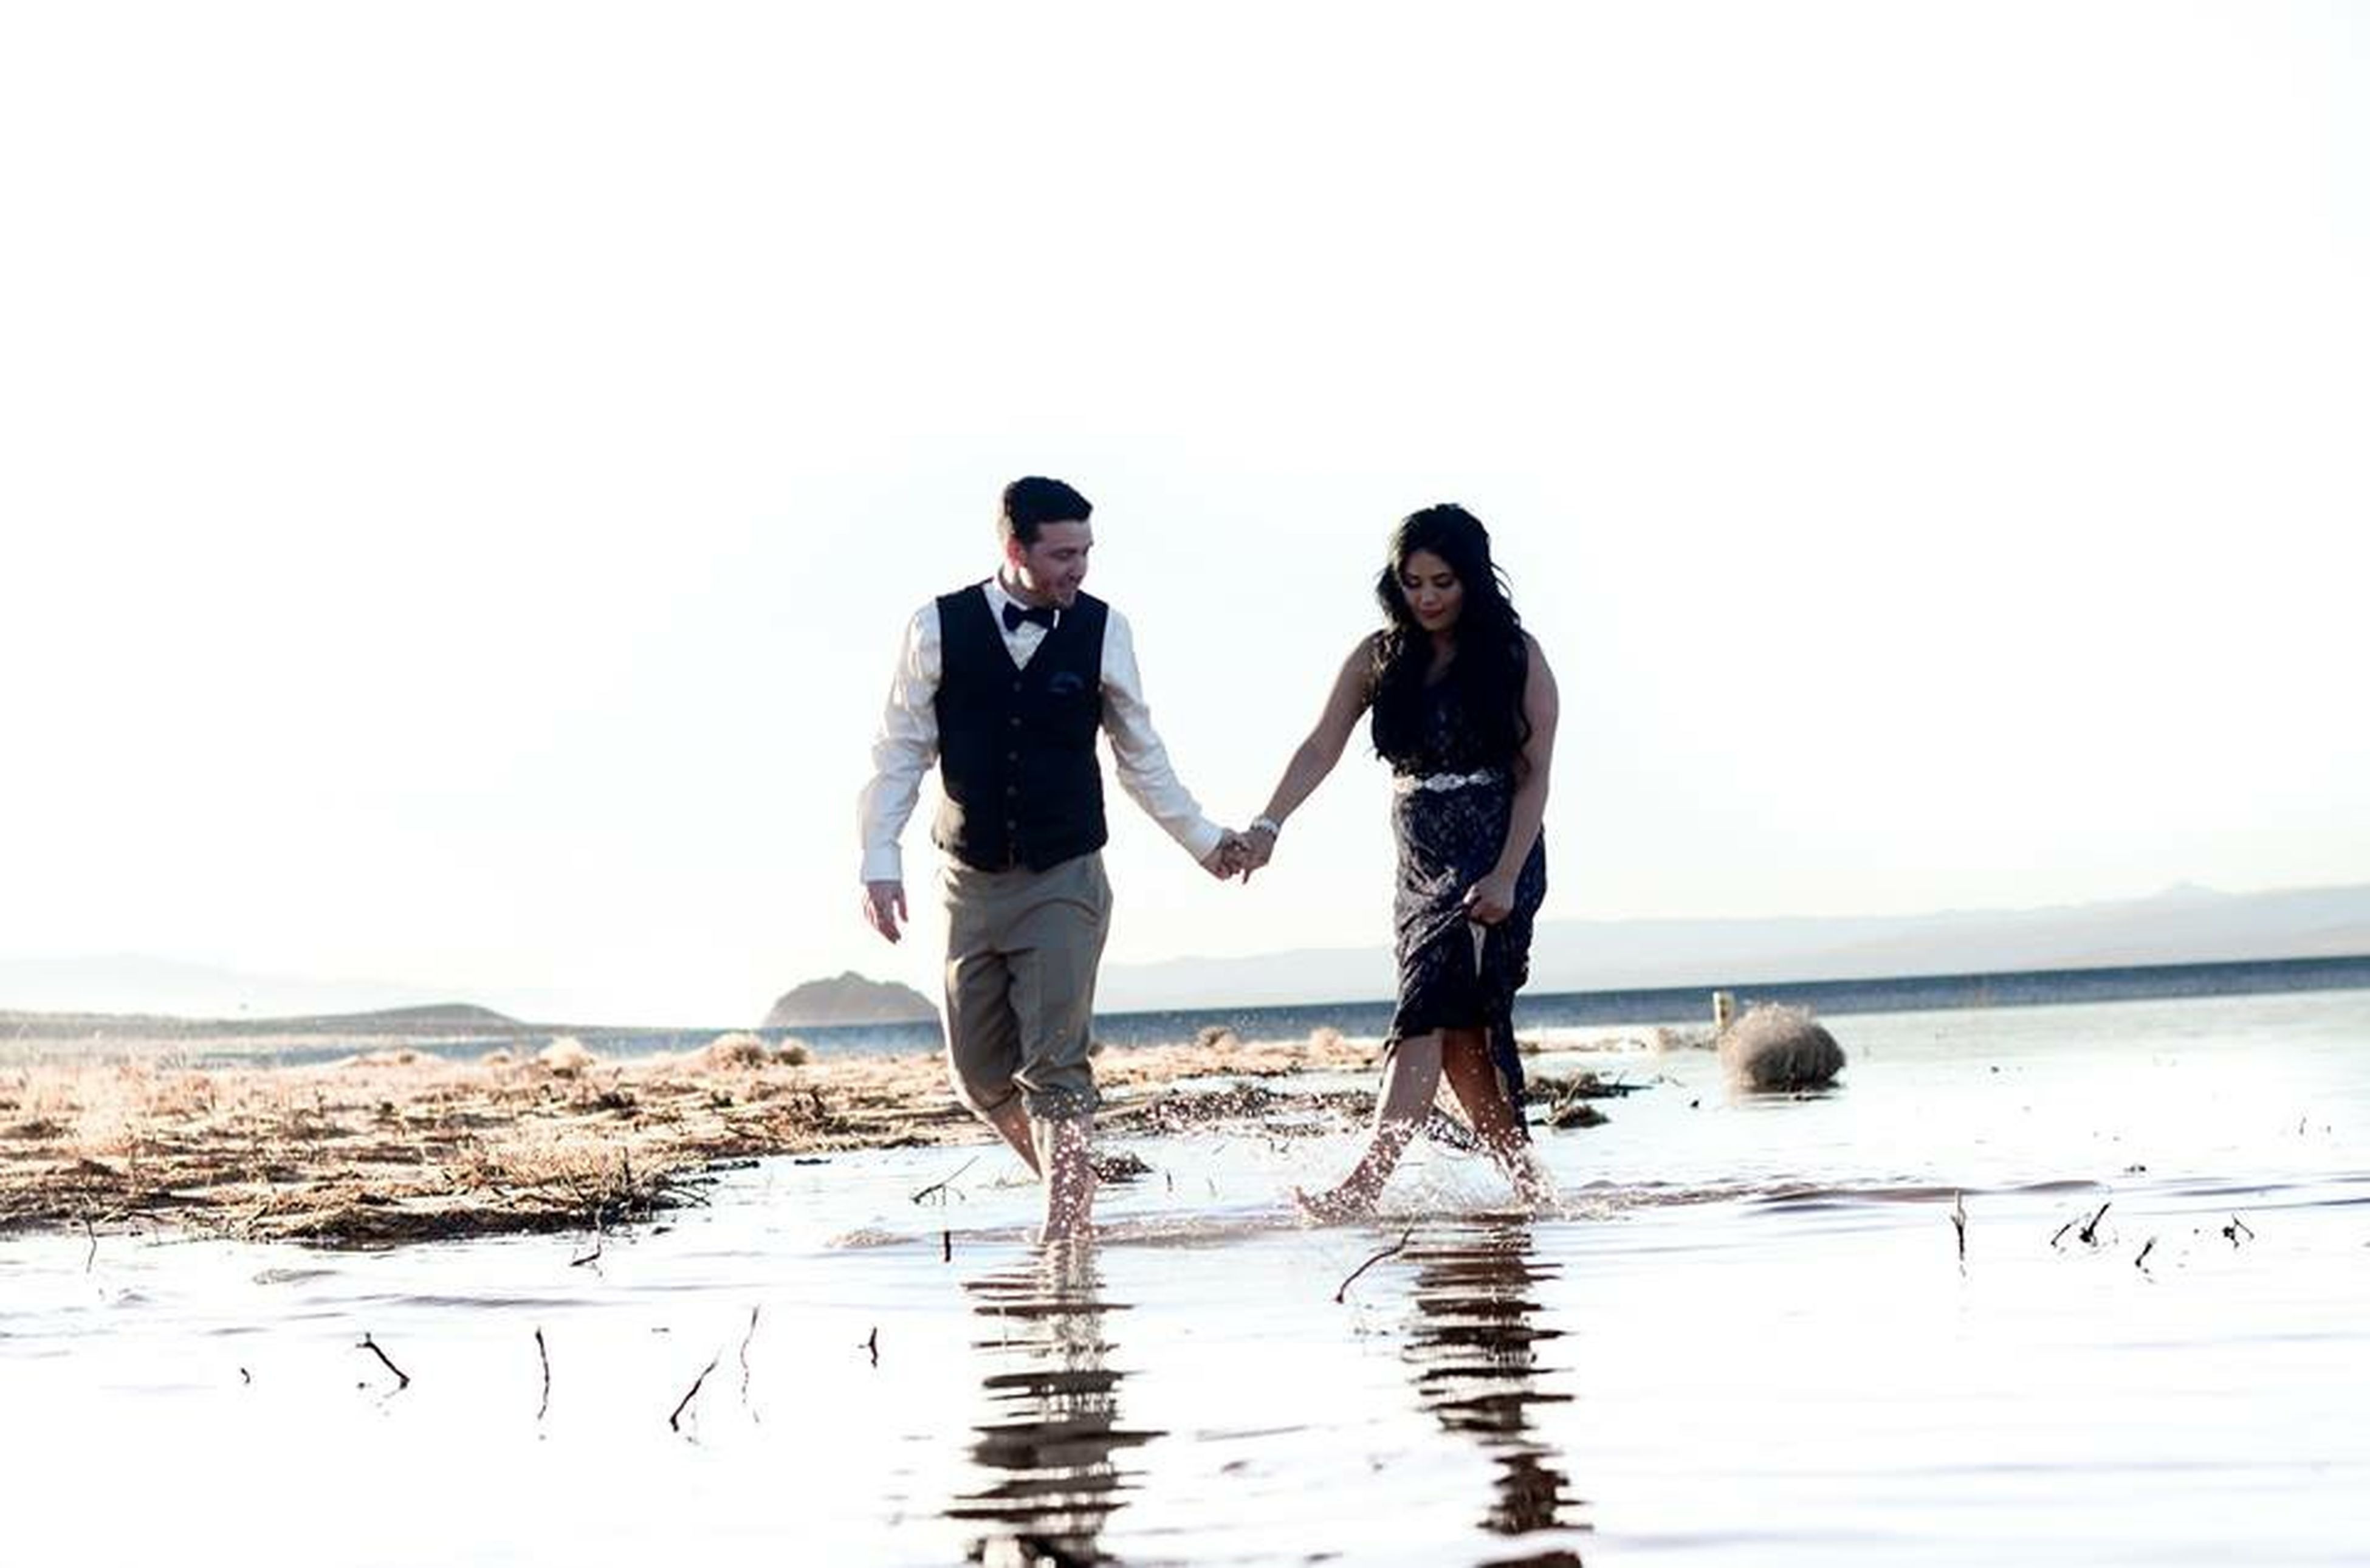 water, clear sky, copy space, leisure activity, lifestyles, full length, beach, togetherness, sea, standing, horizon over water, bonding, men, shore, boys, vacations, casual clothing, rear view